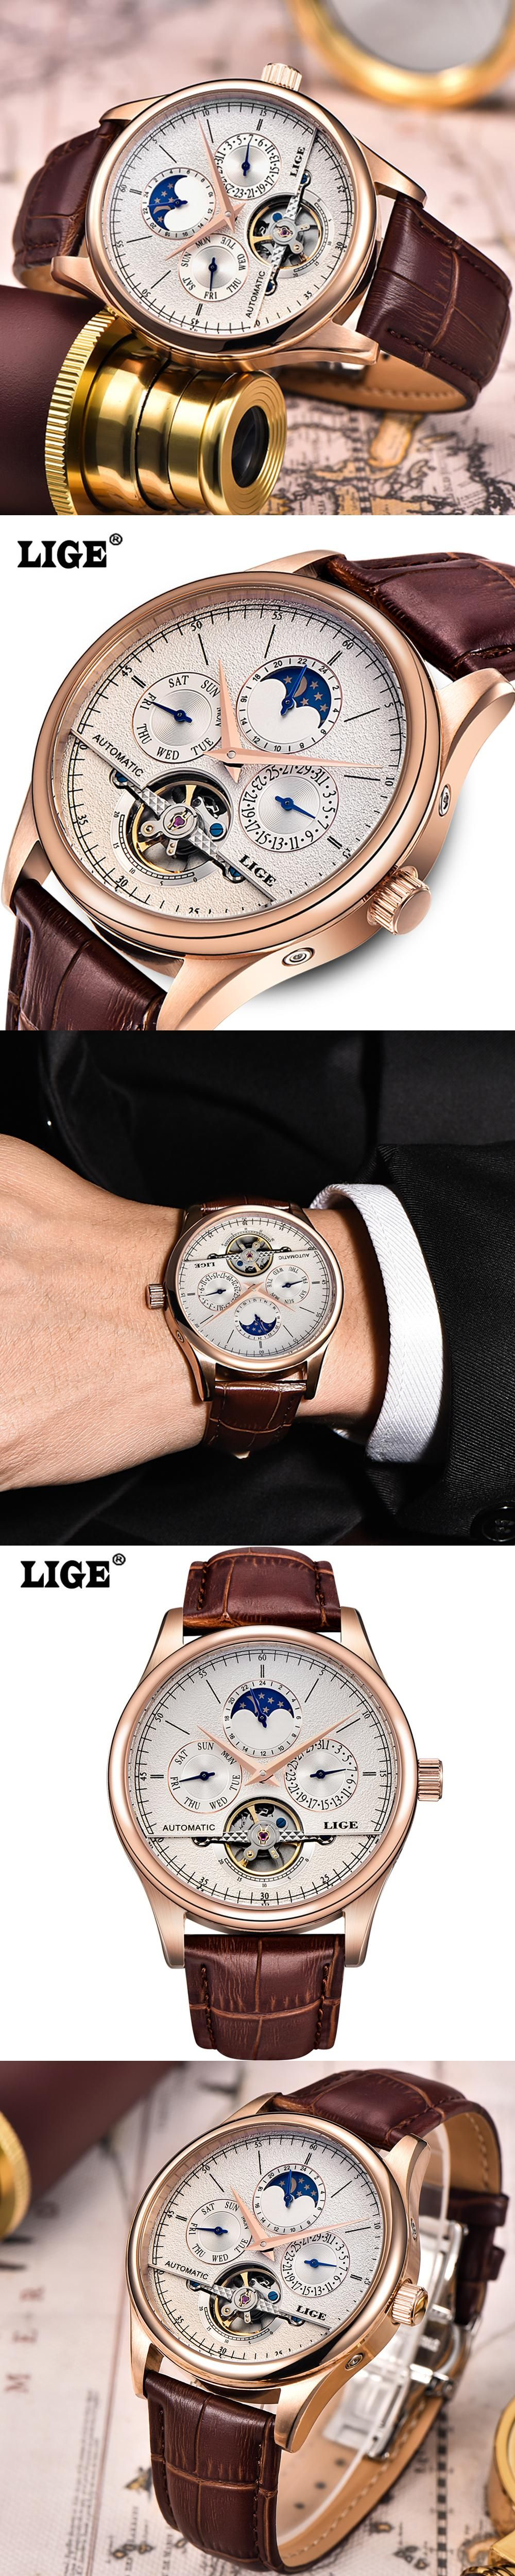 s watch men leather brand moon automatic casual pin lige tourbillon waterproof hollow phase business wrist watches